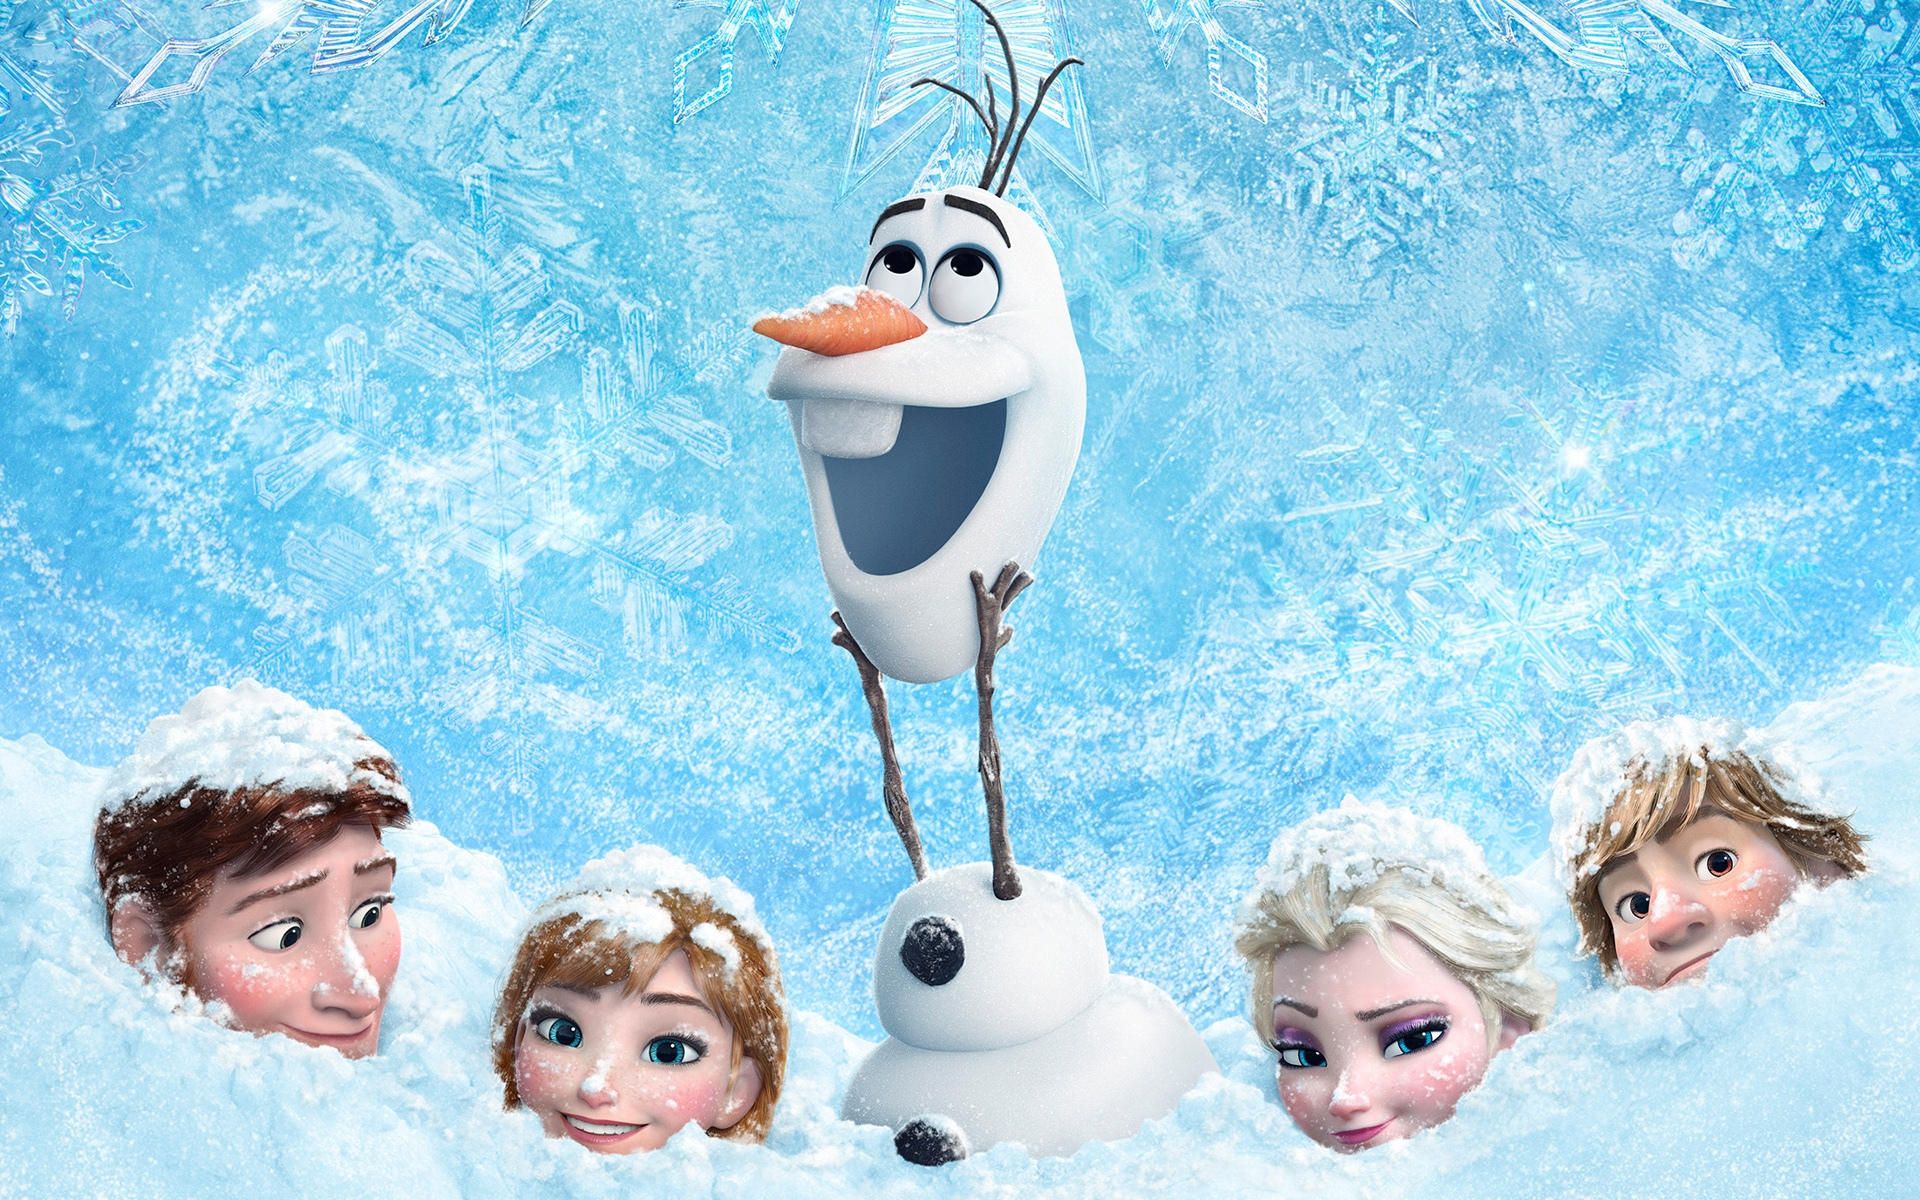 Image Result For Full Movie Frozen